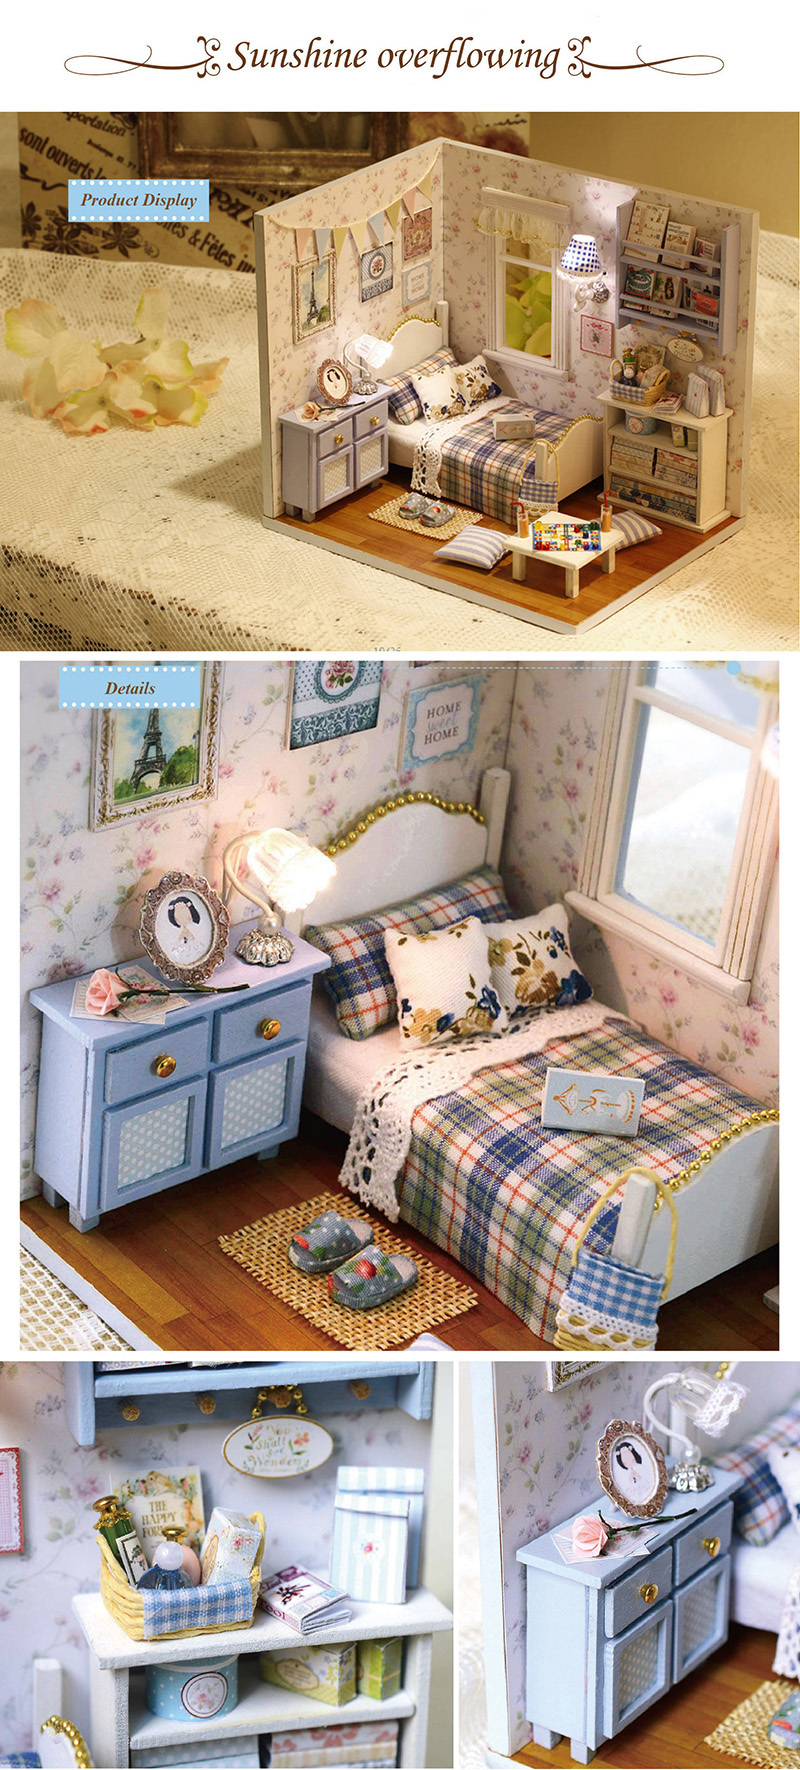 Sunshine Overflowing 3D DIY Wooden Doll House Handmade Mini Puzzle Miniature Furniture Toy Dollhouse Educational Toys Gift (1)